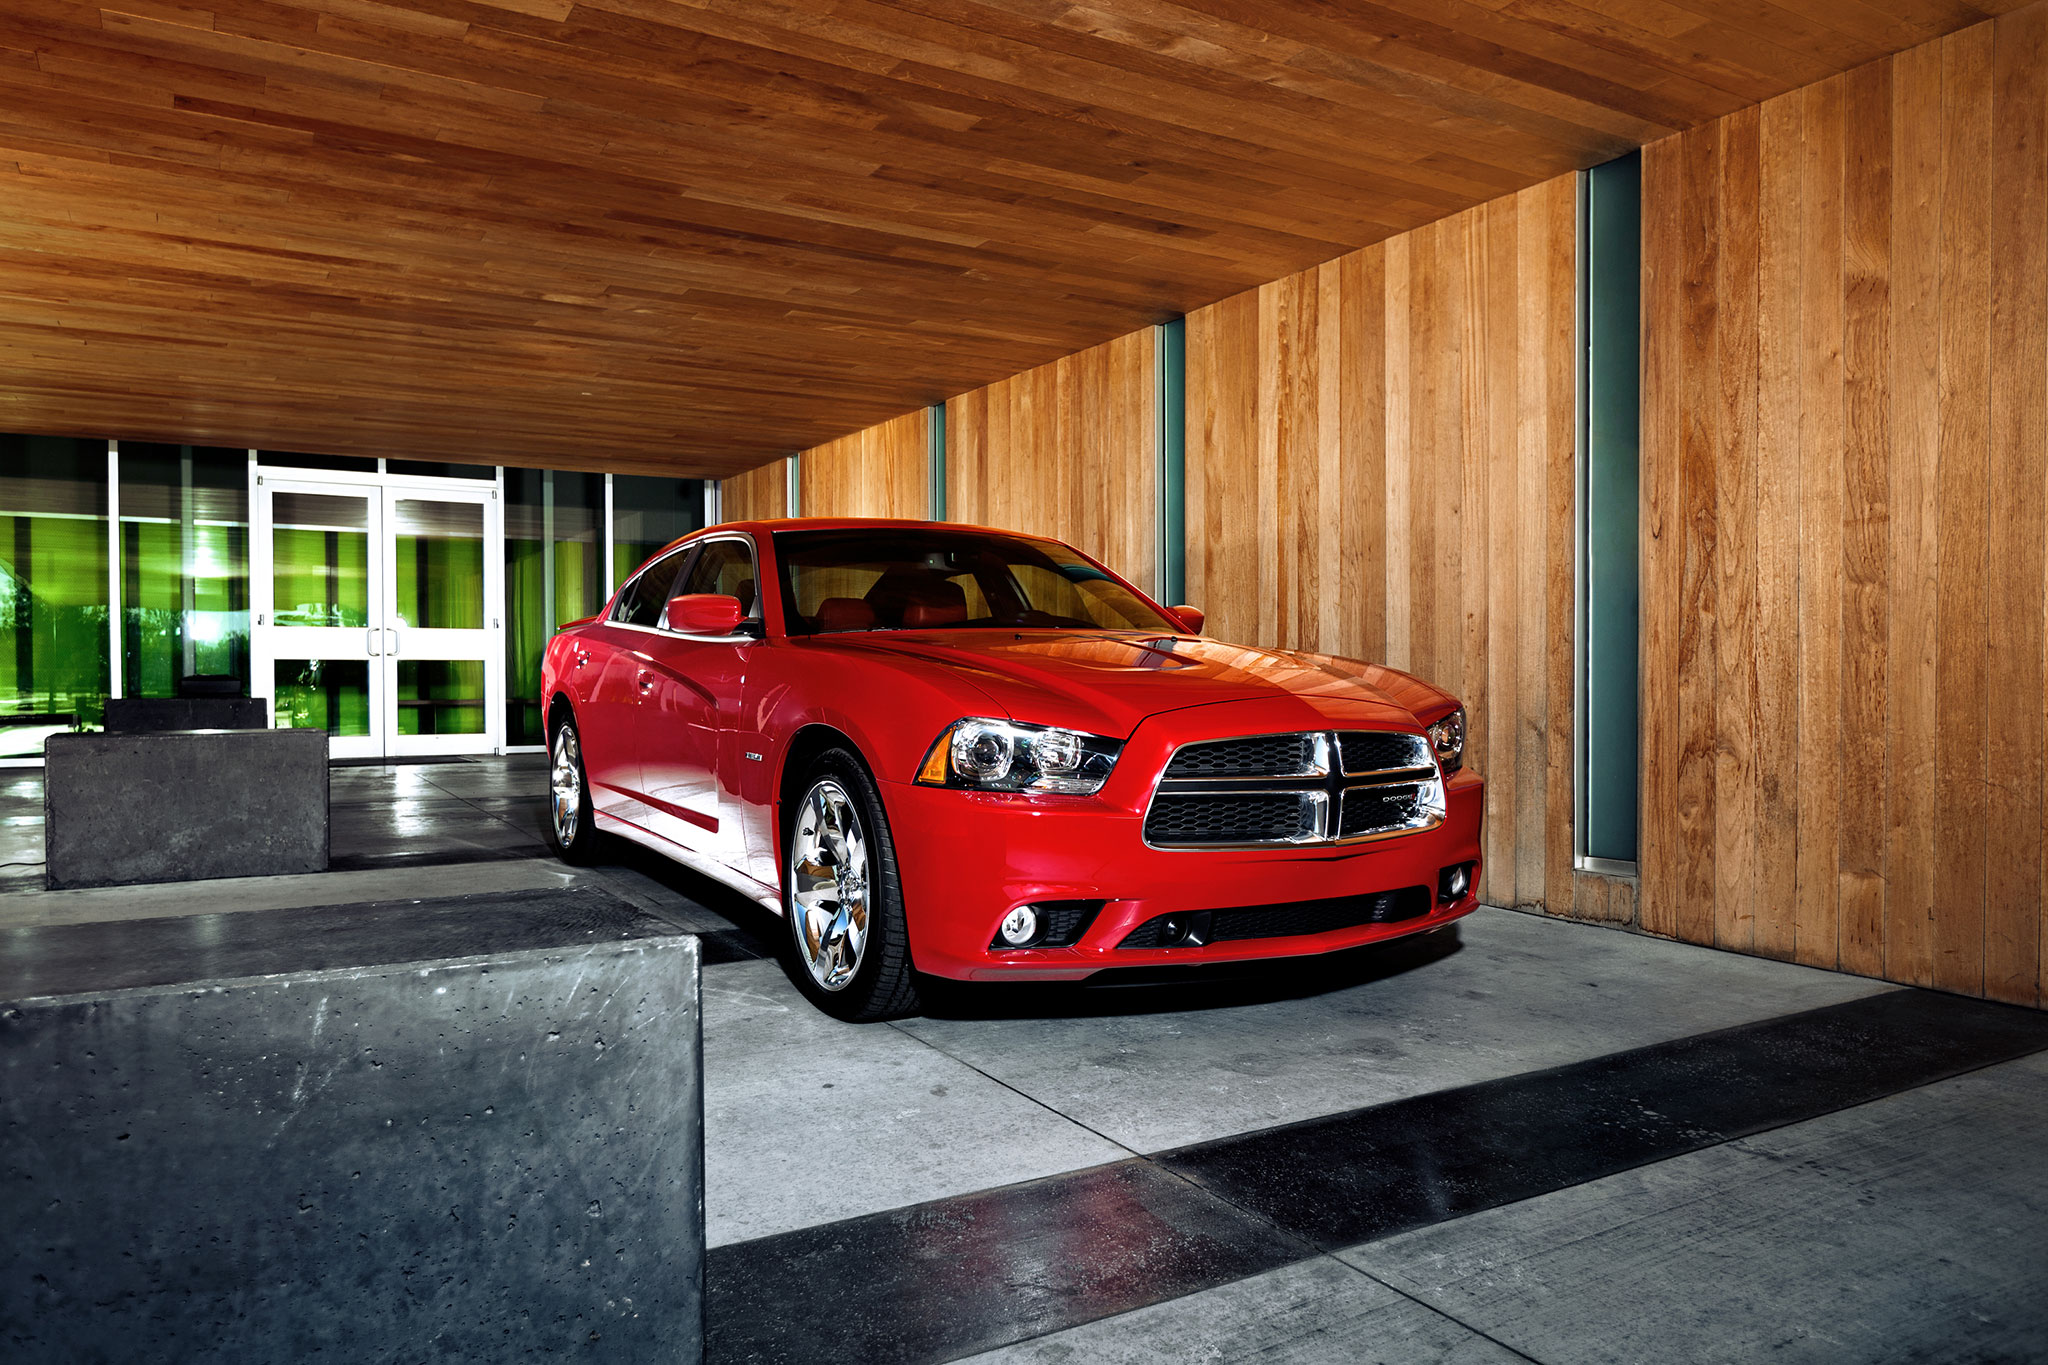 2014 Dodge Charger RT Front View1